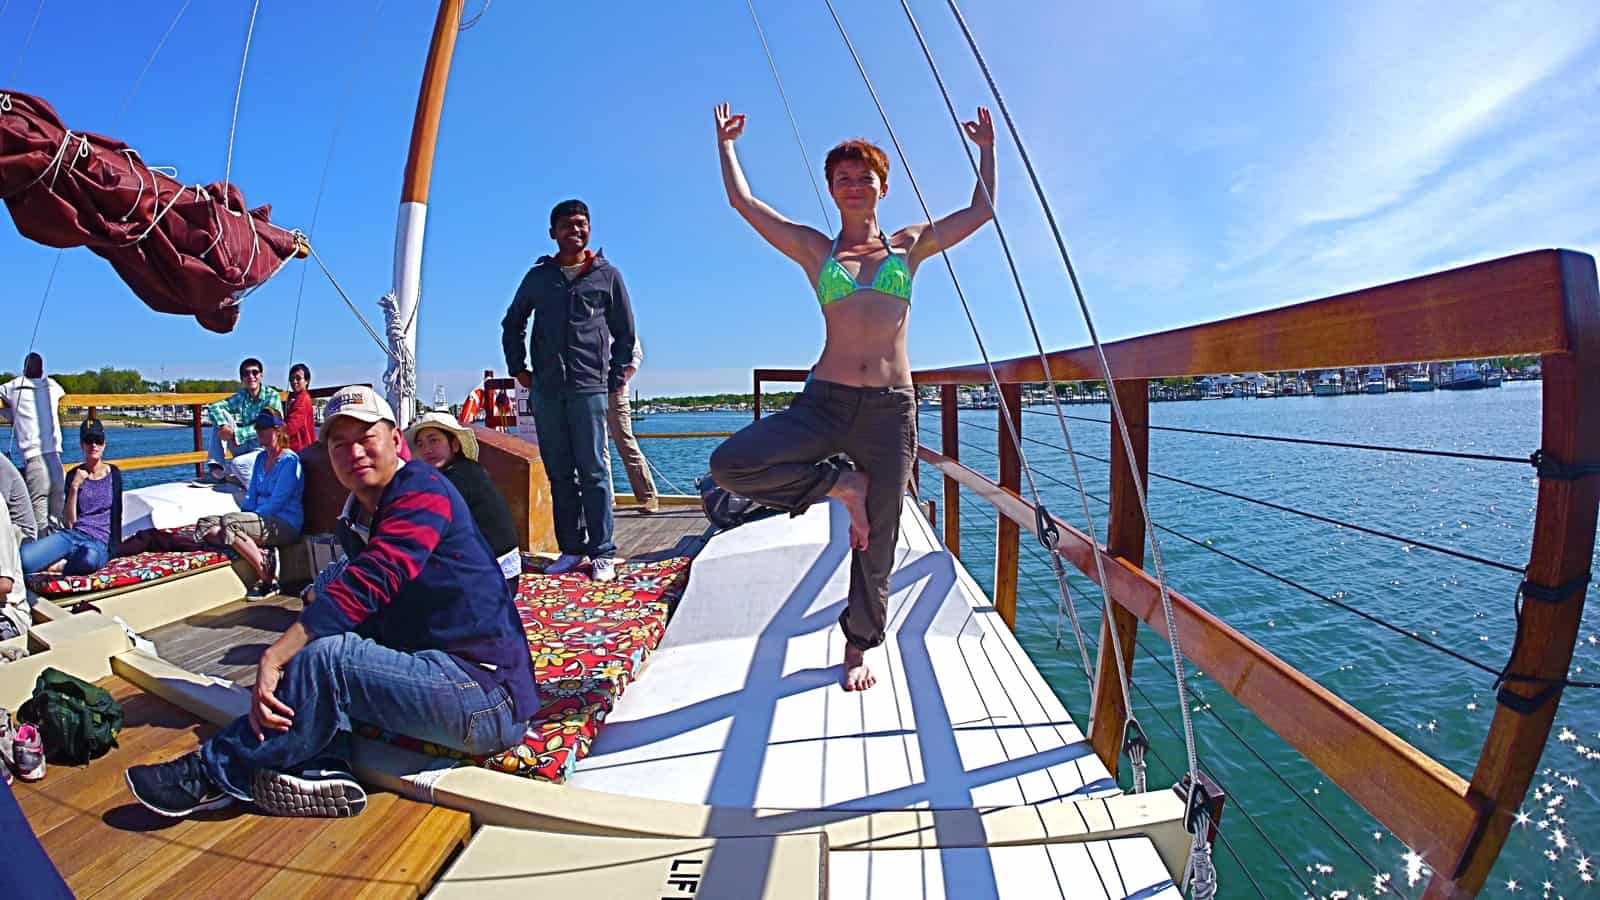 A Googler does yoga on the charter catamaran Mon Tiki sailing though Montauk Harbor, photo by Sailing Montauk